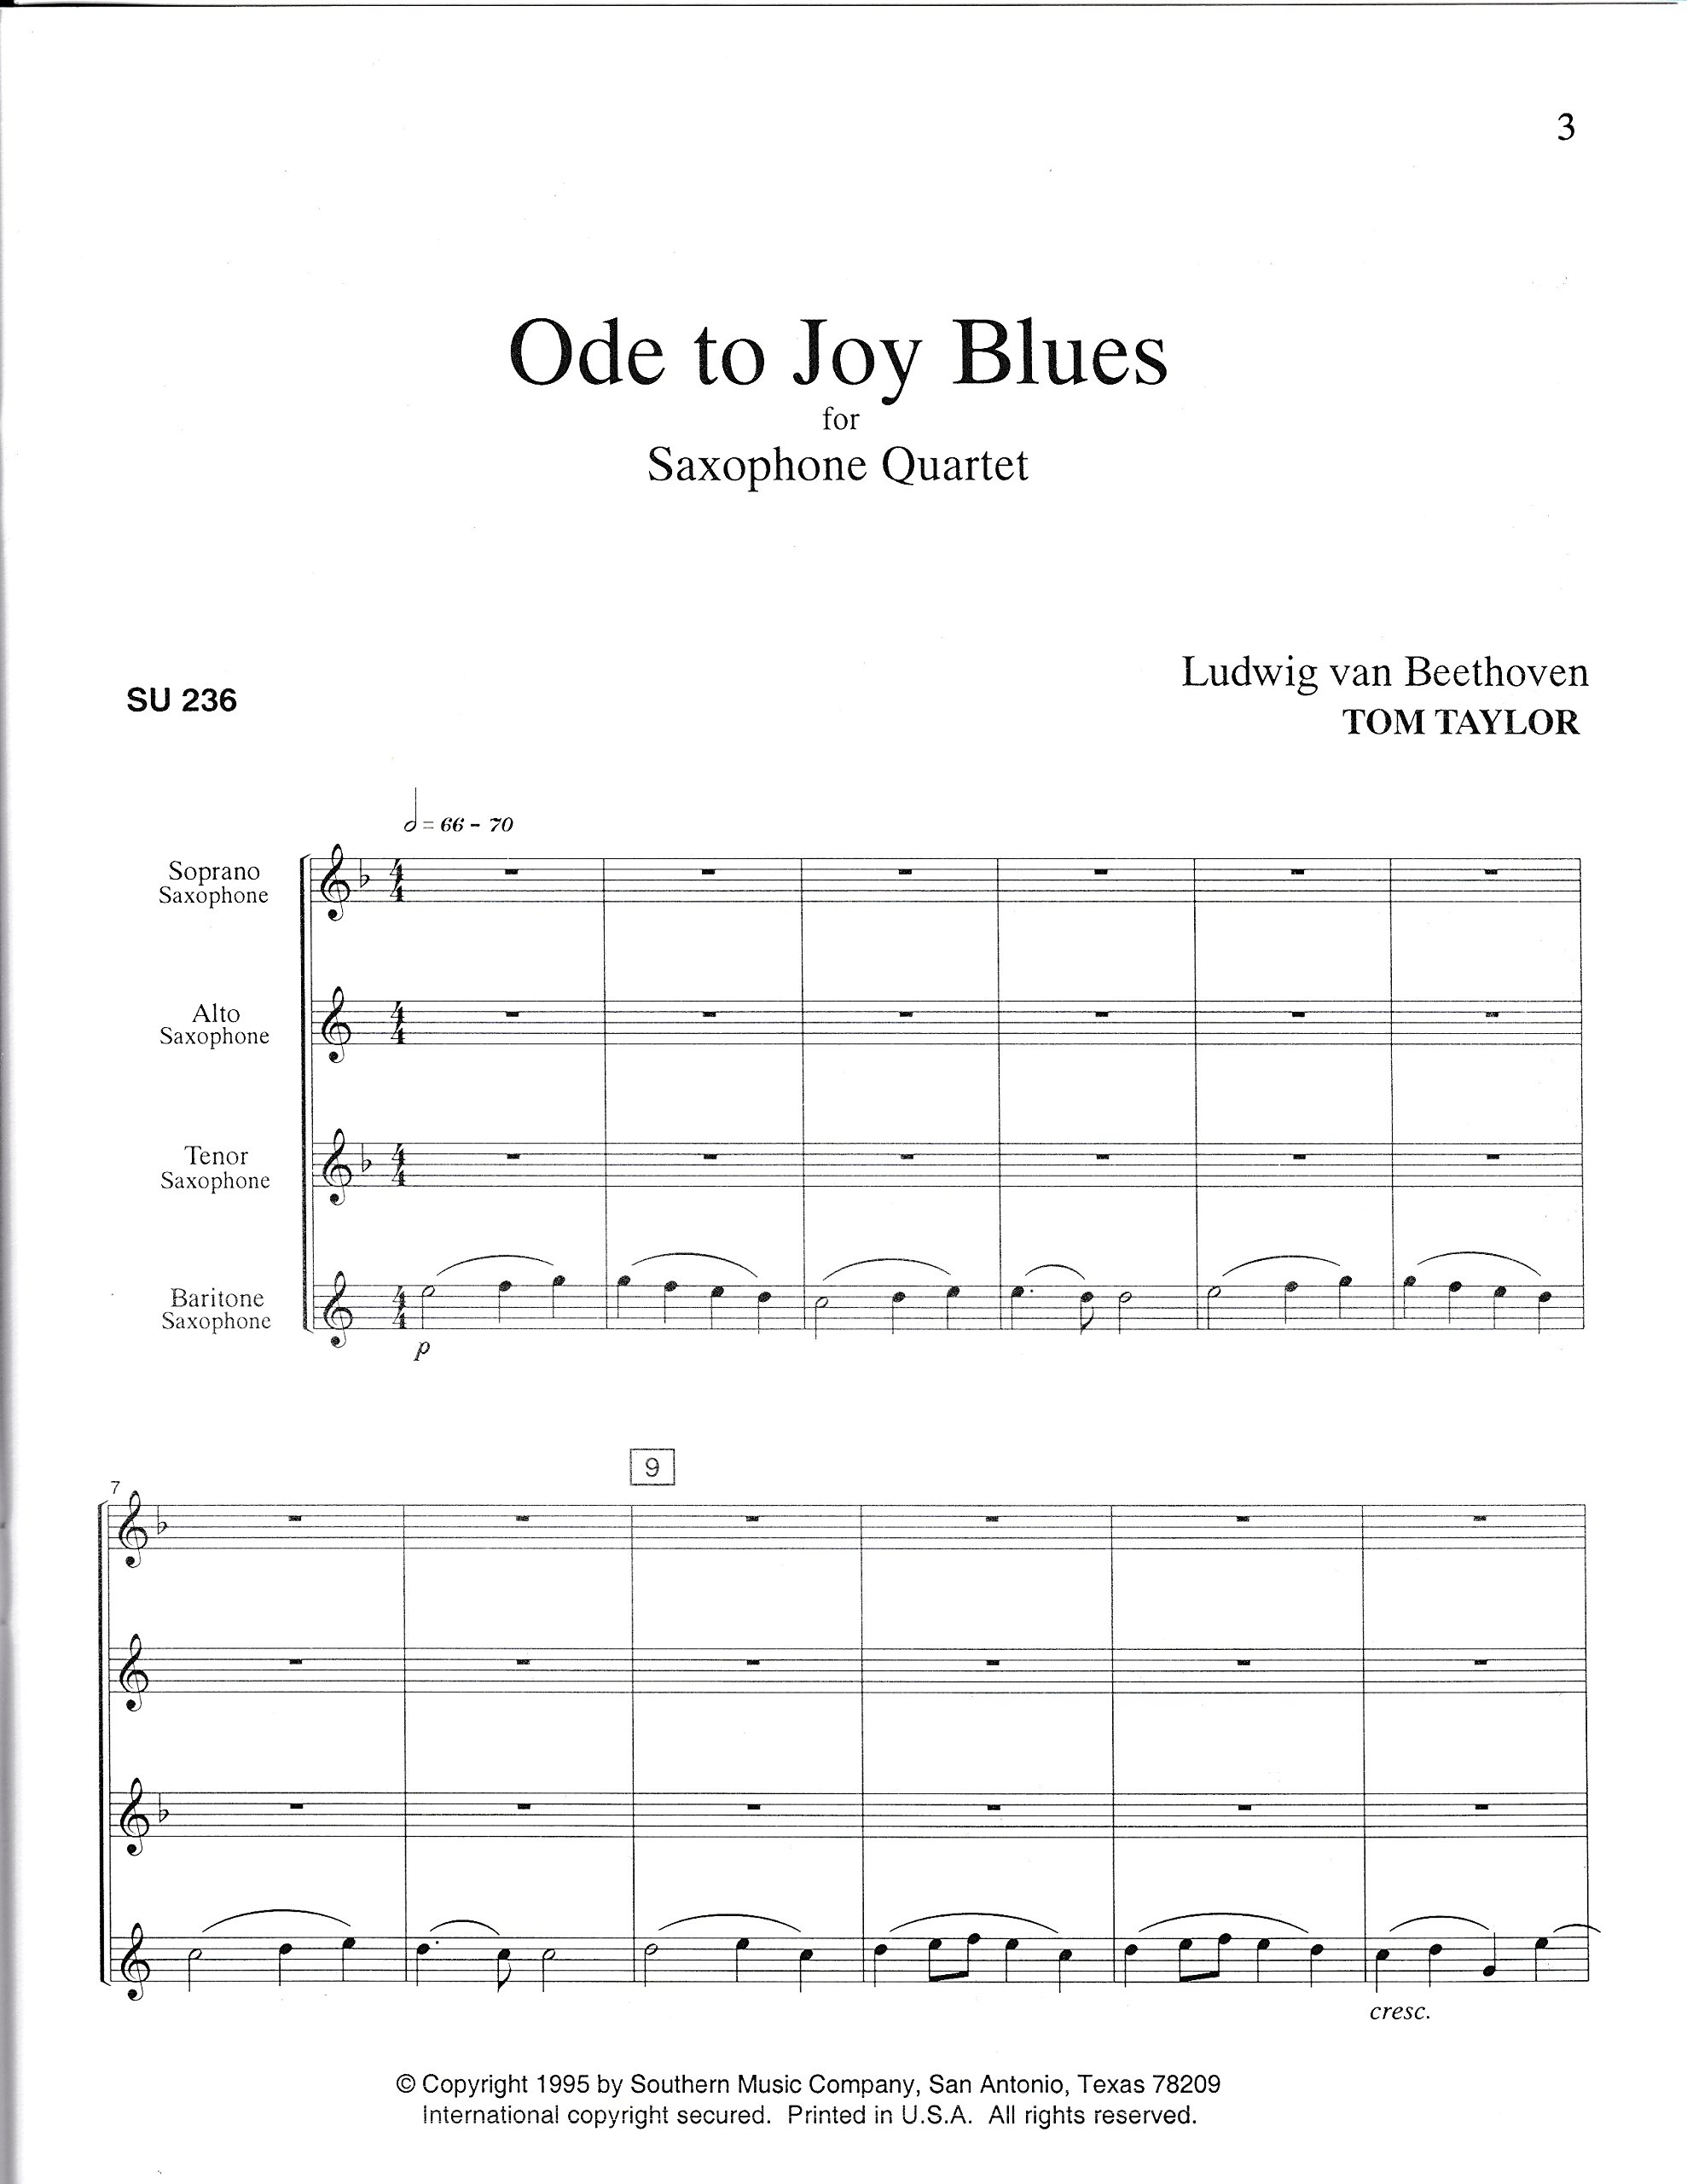 Amazon com: Ode to Joy Blues for Saxophone Quartet by Tom Taylor